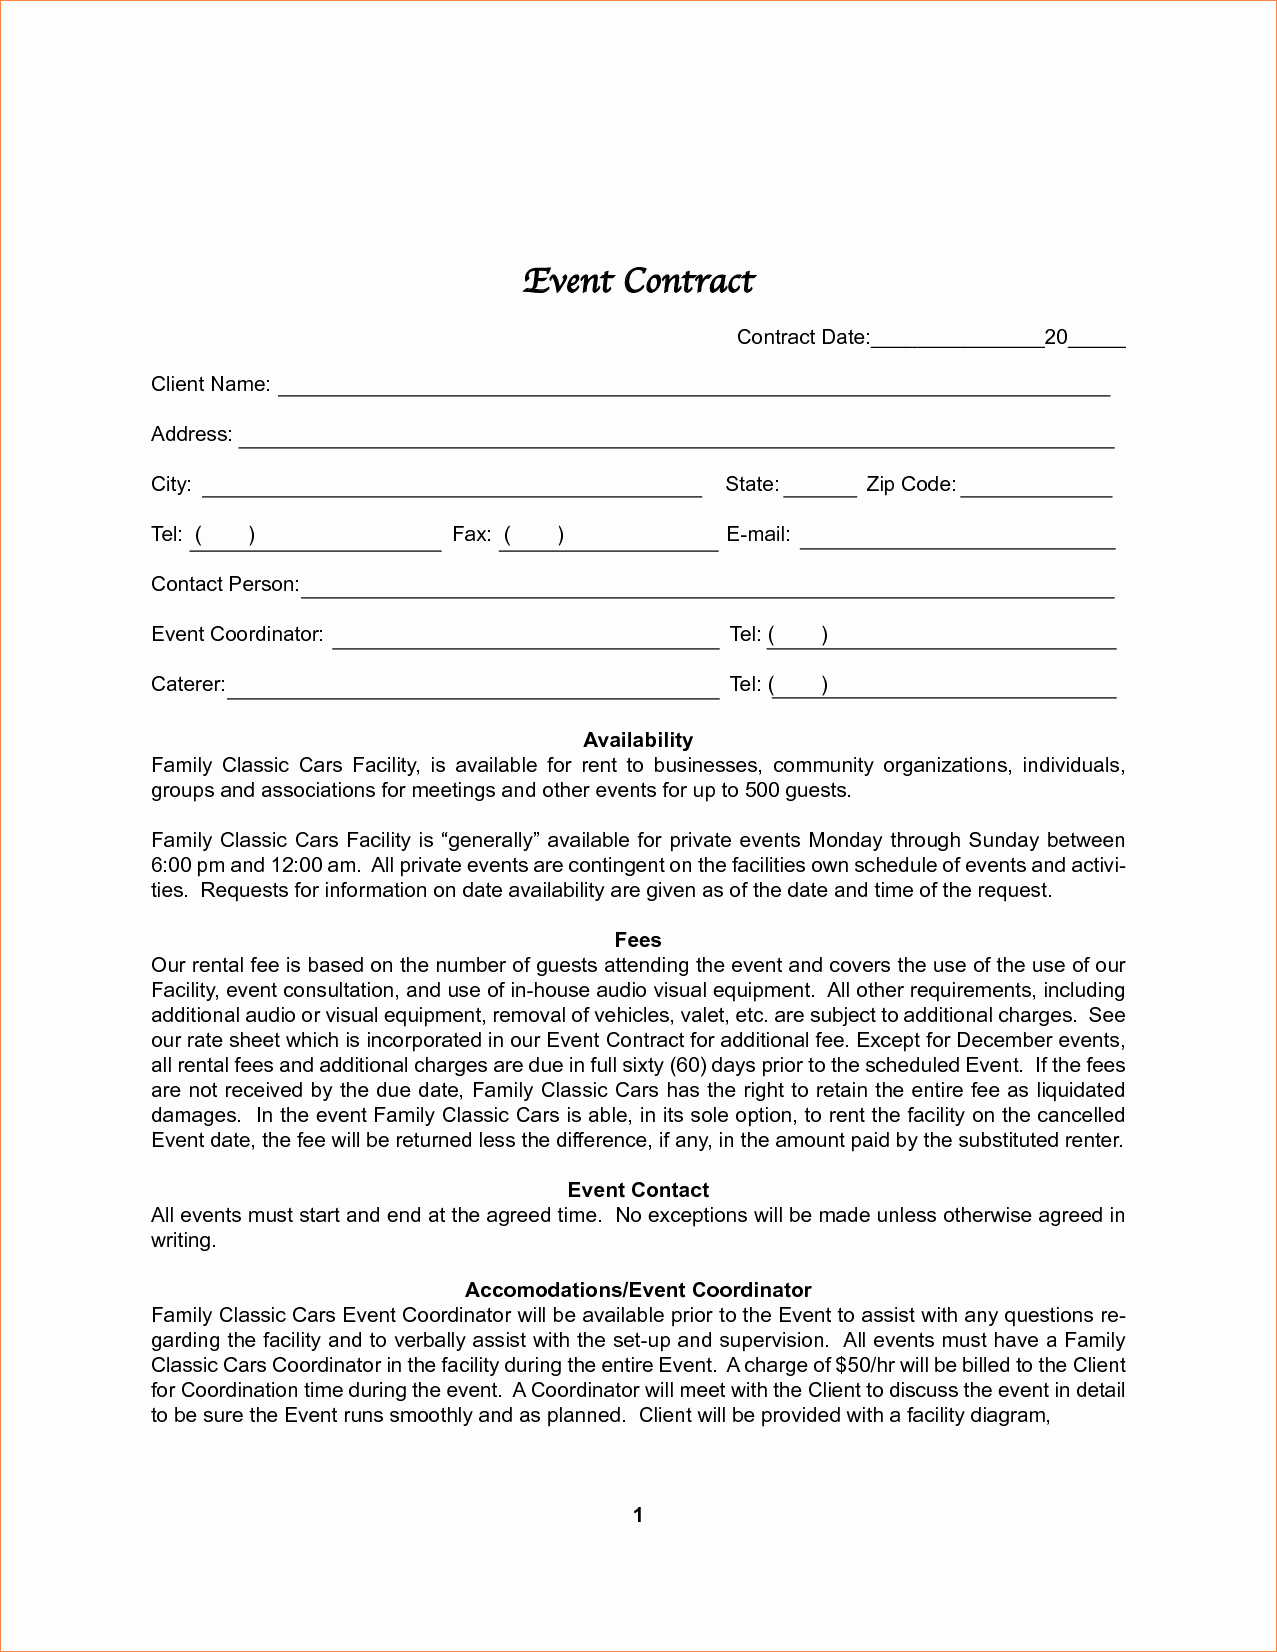 Event Planning Contract Template Free Lovely 011 Plan Template event Contract Sample Contracts for